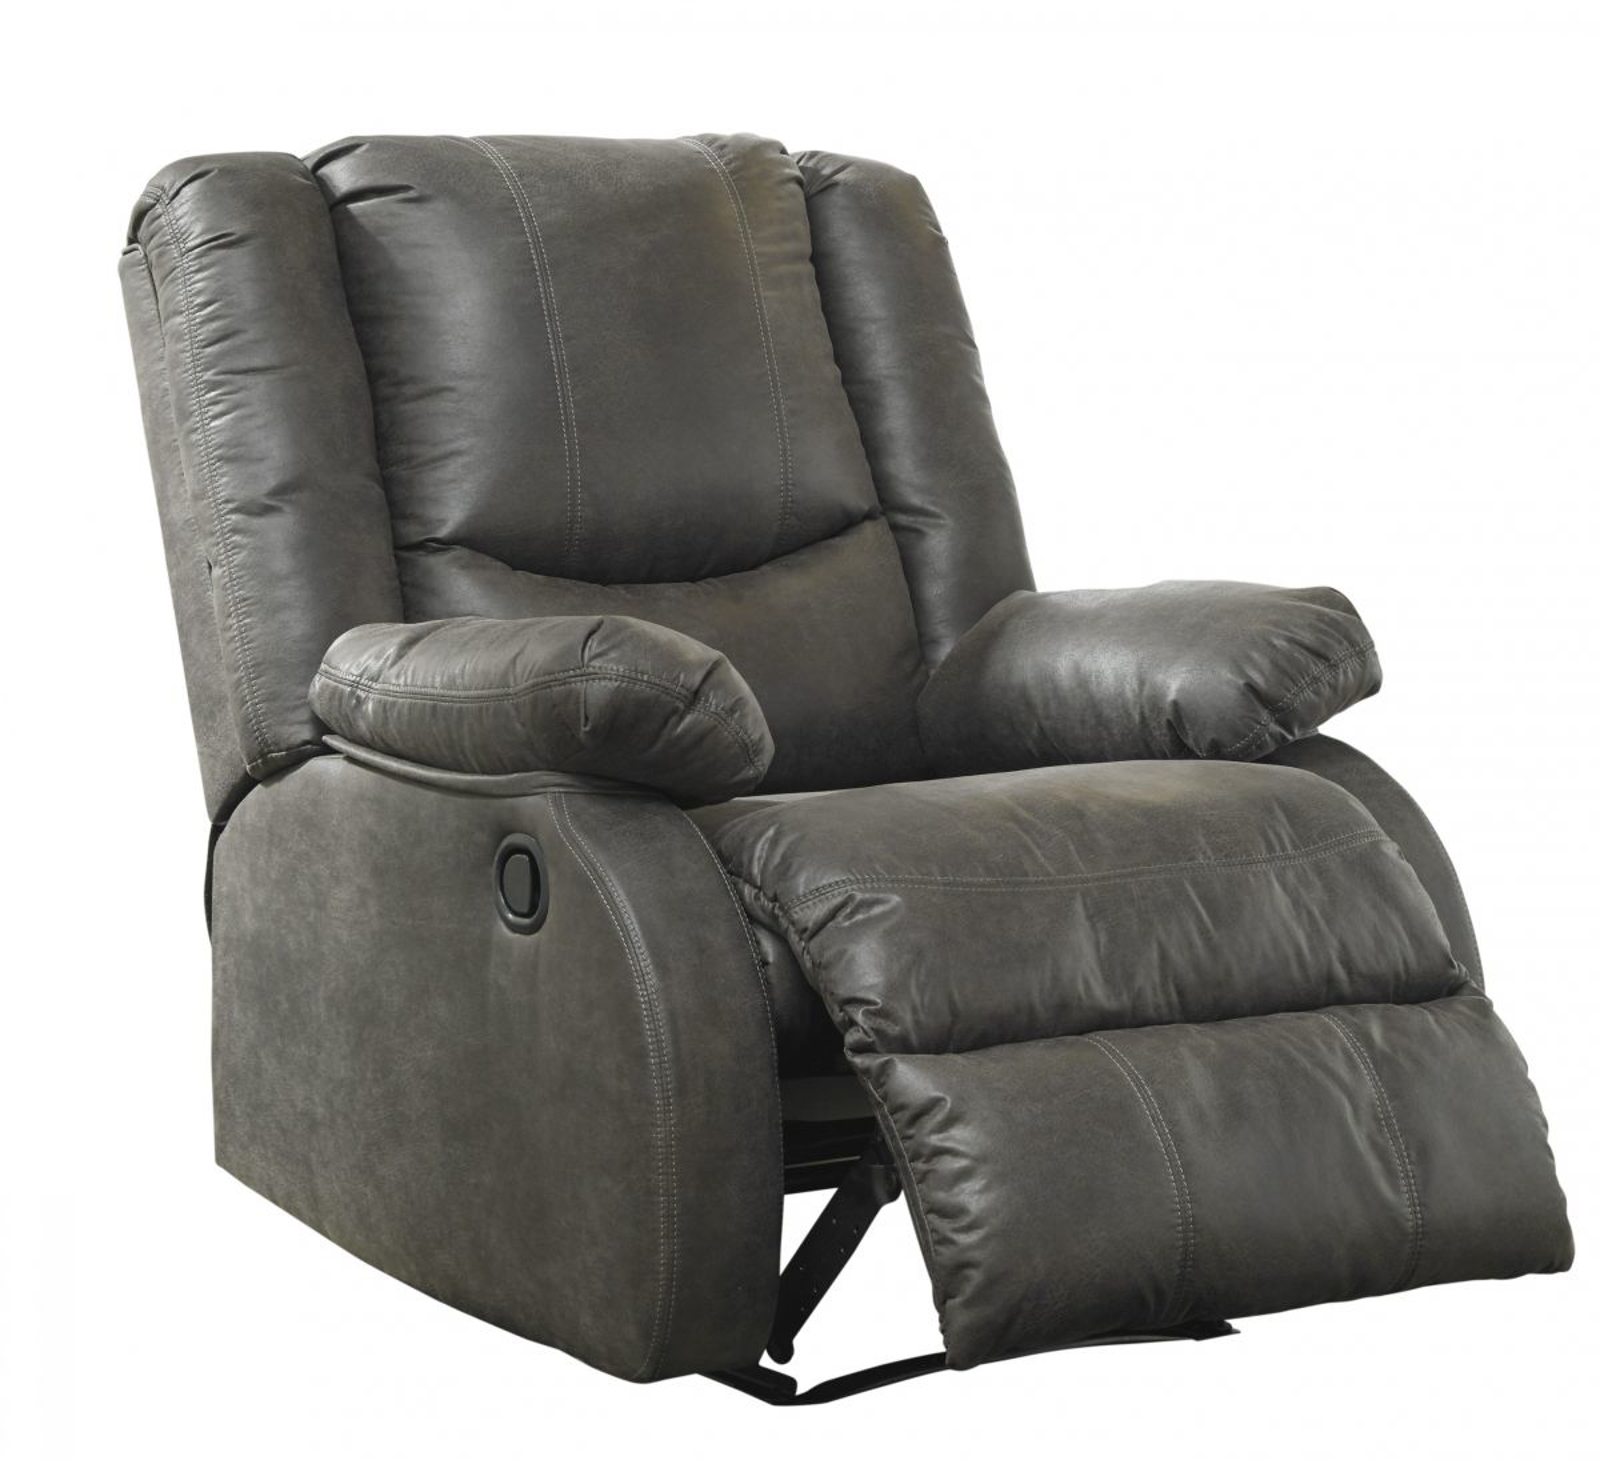 Picture of Bladewood Recliner